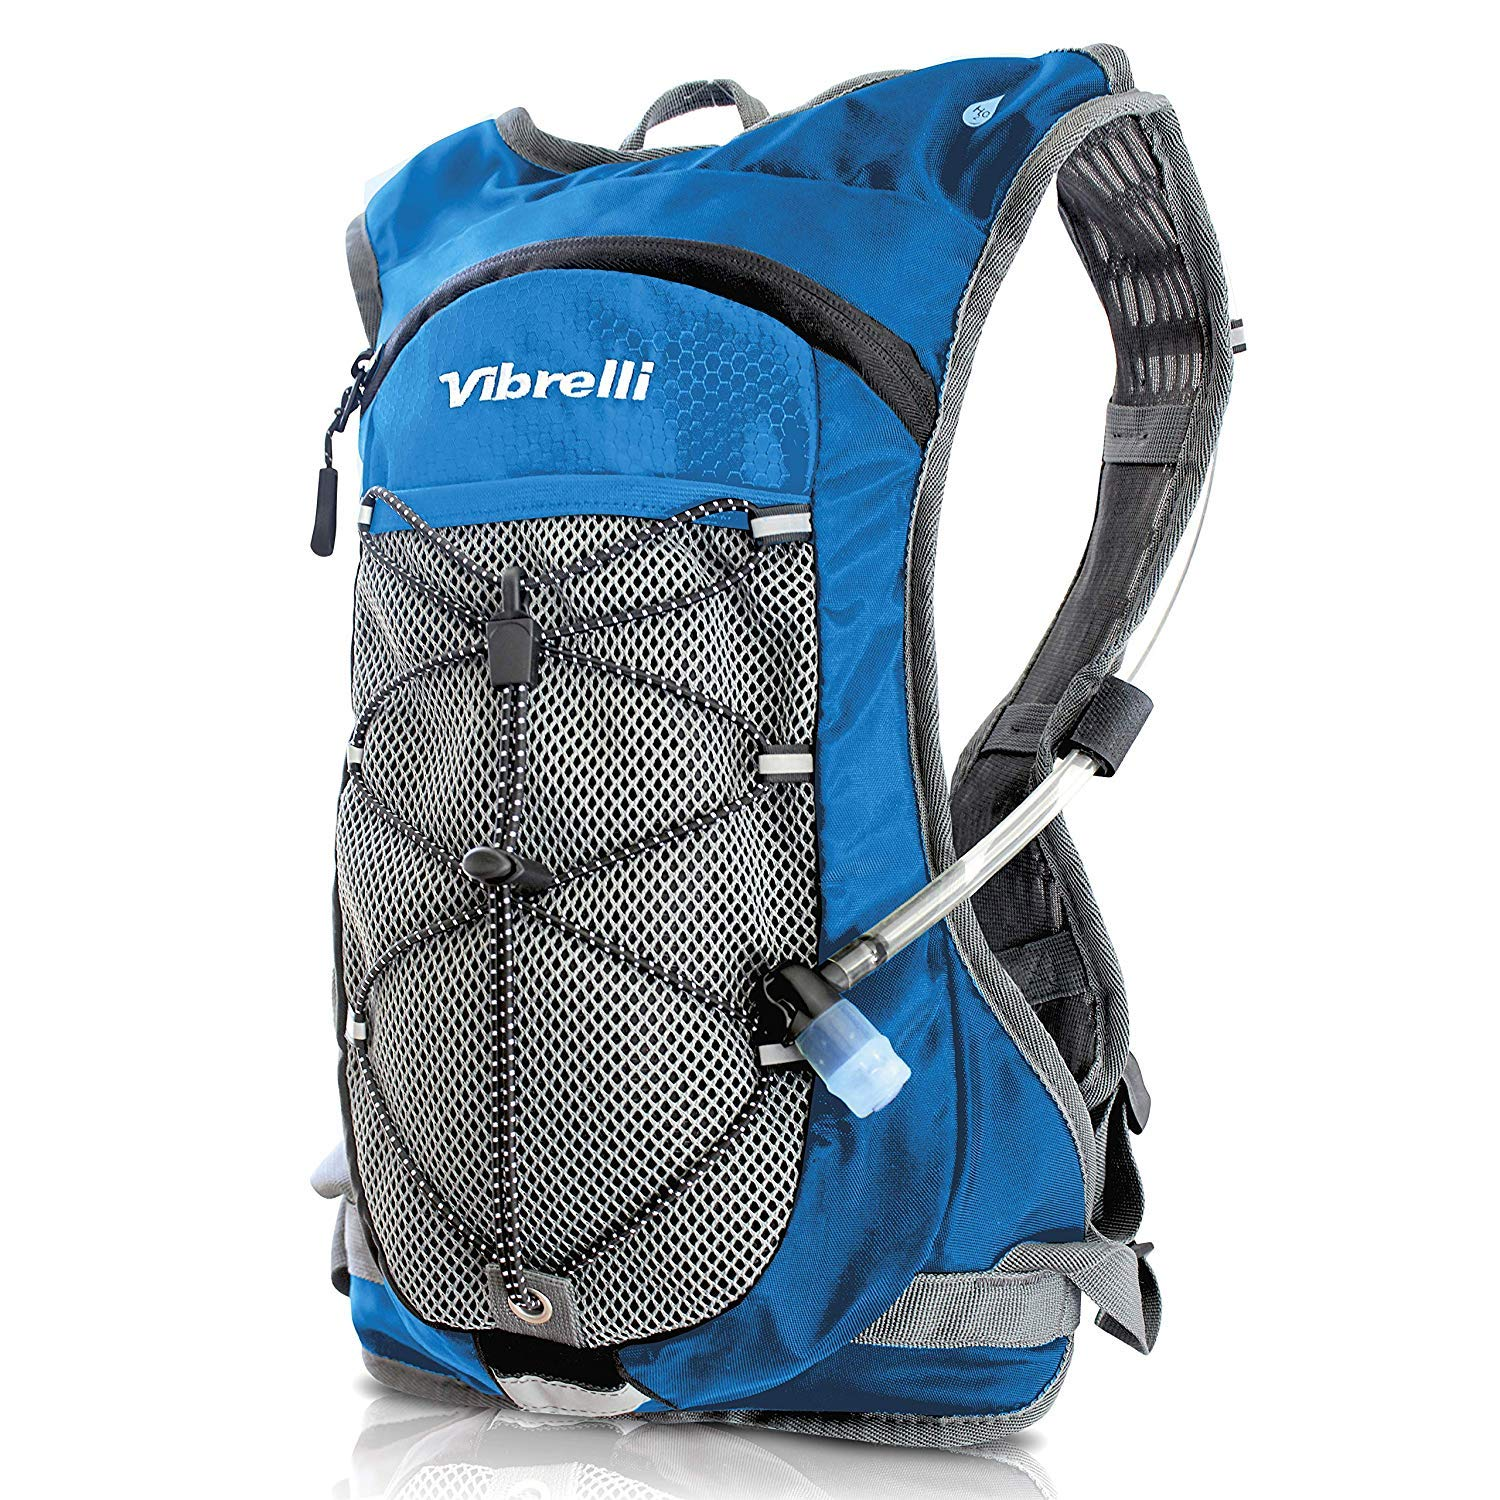 Vibrelli Hydration Backpack & 2L Hydration Bladder - High Flow Bite Valve - Hydration Pack for Cycling, Running, Hiking by Vibrelli